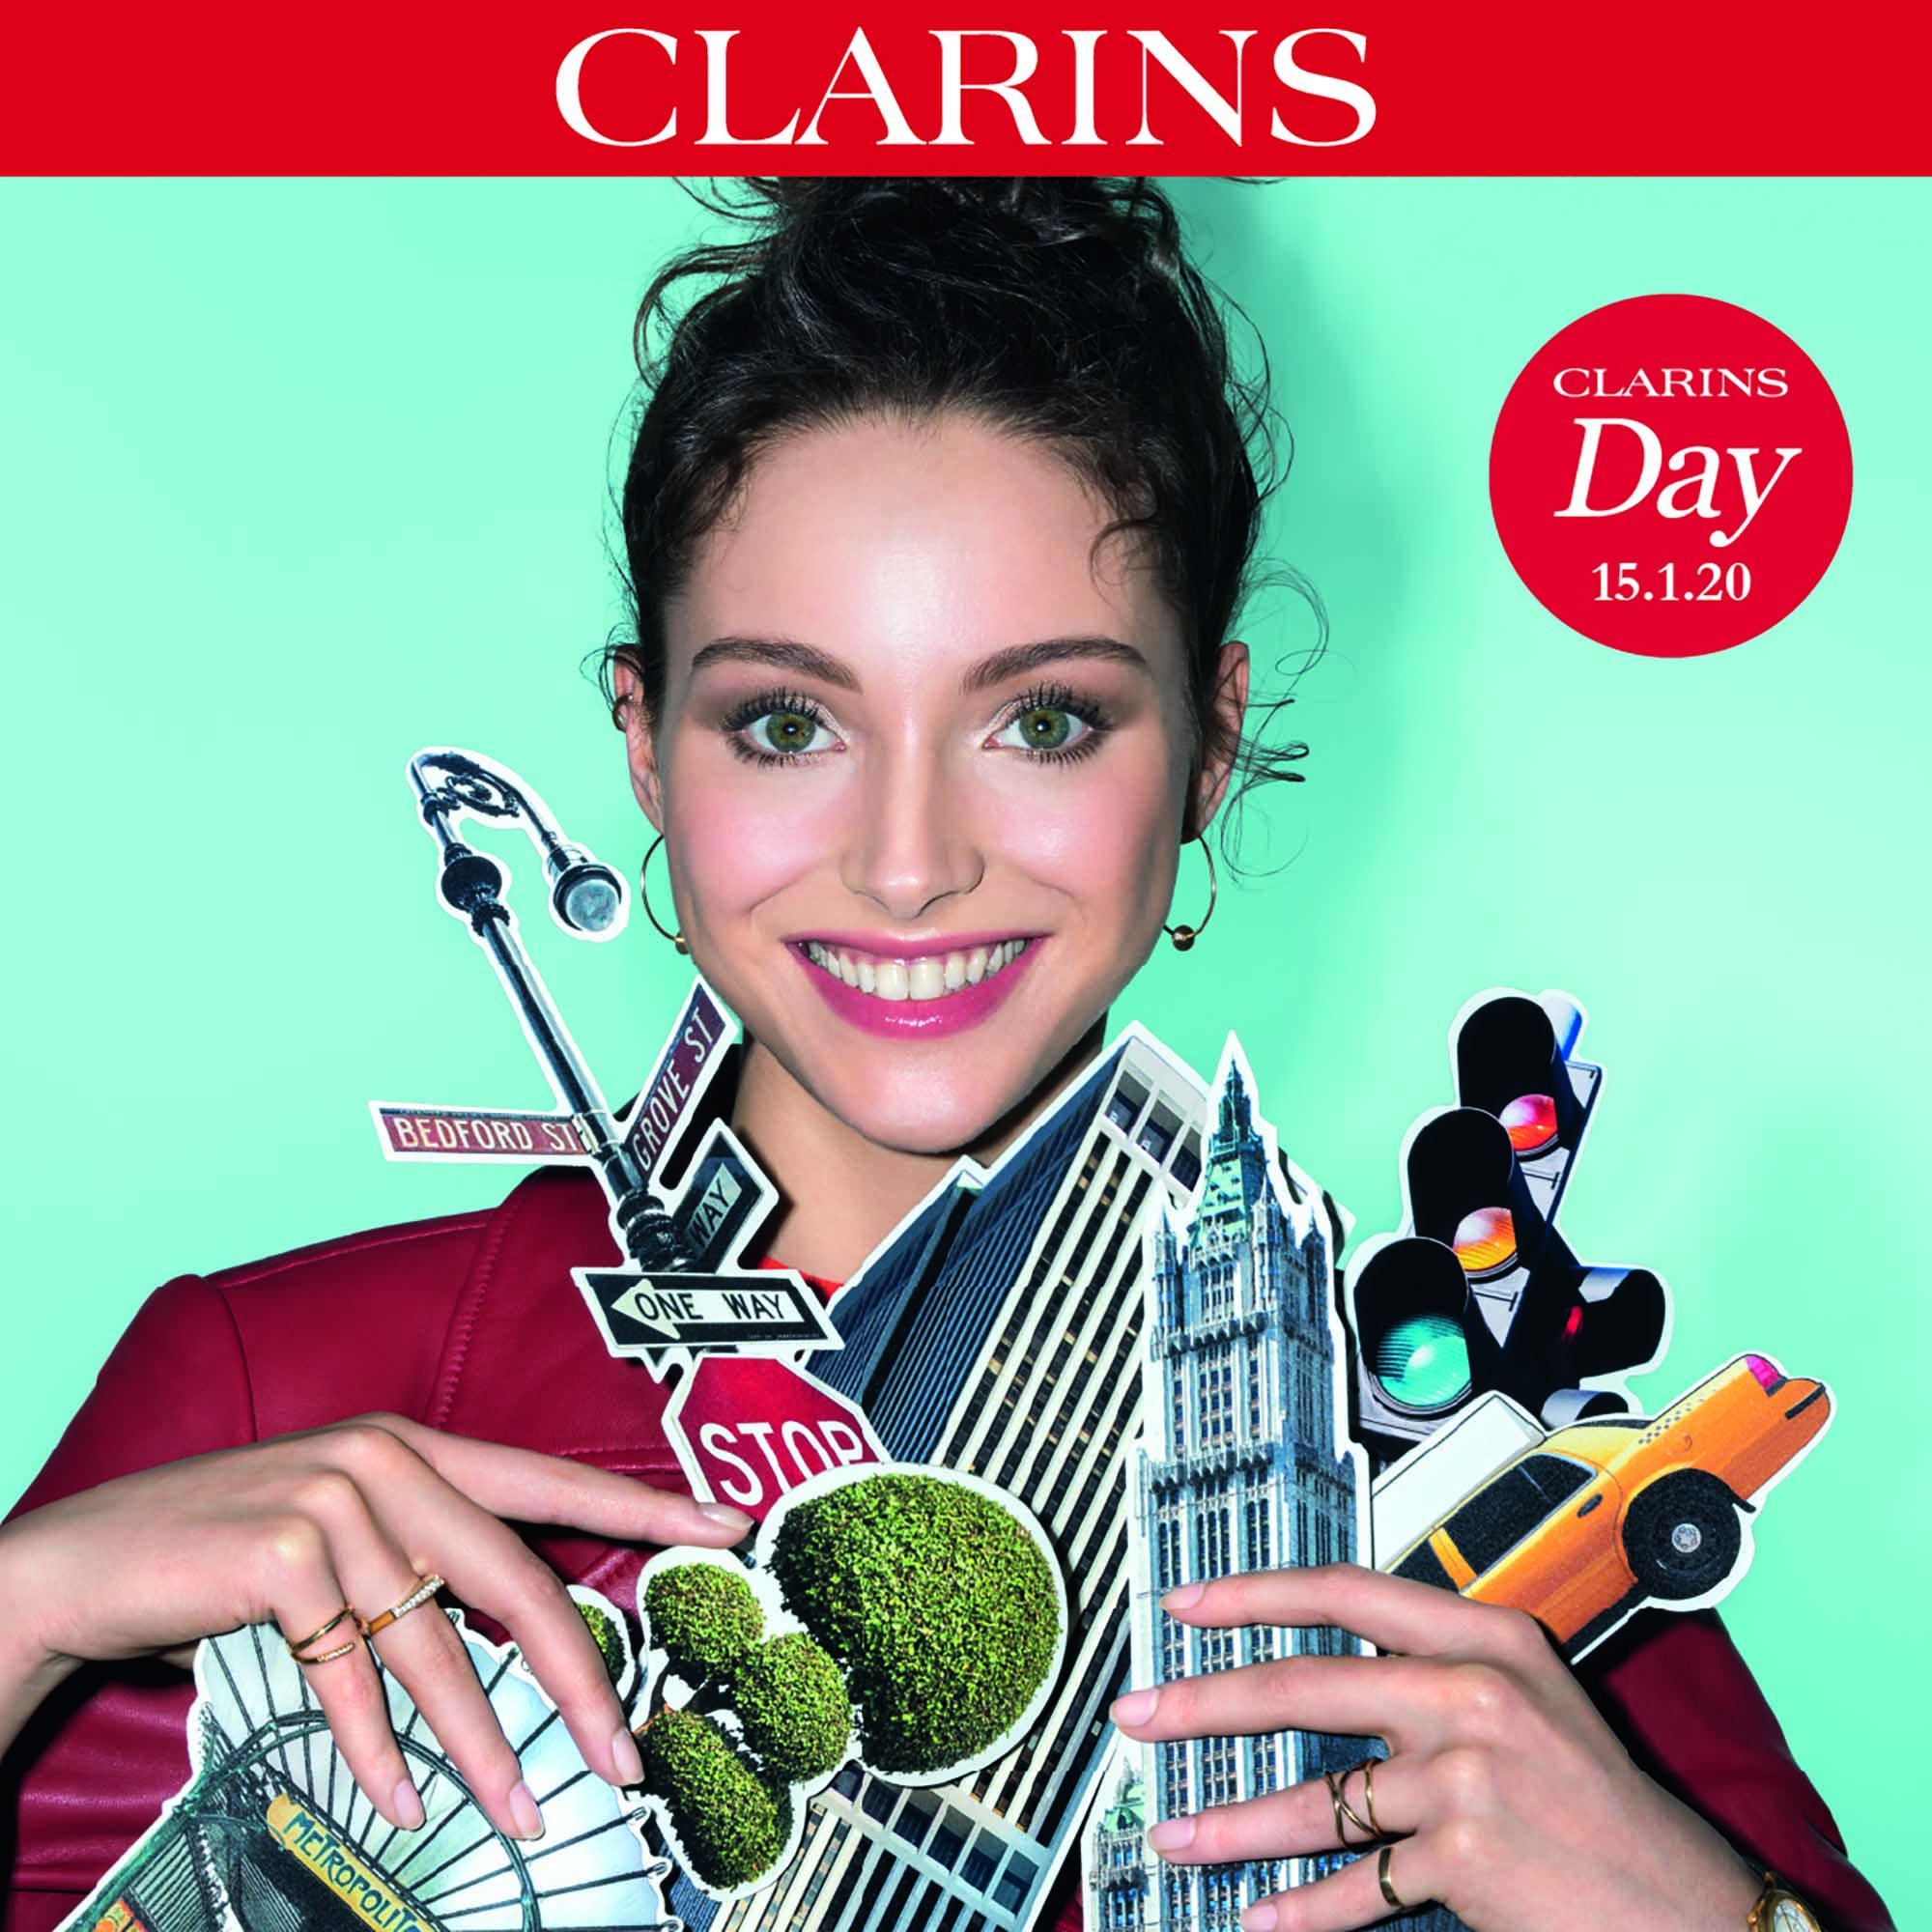 ClarinsDay_Super_Farm-5